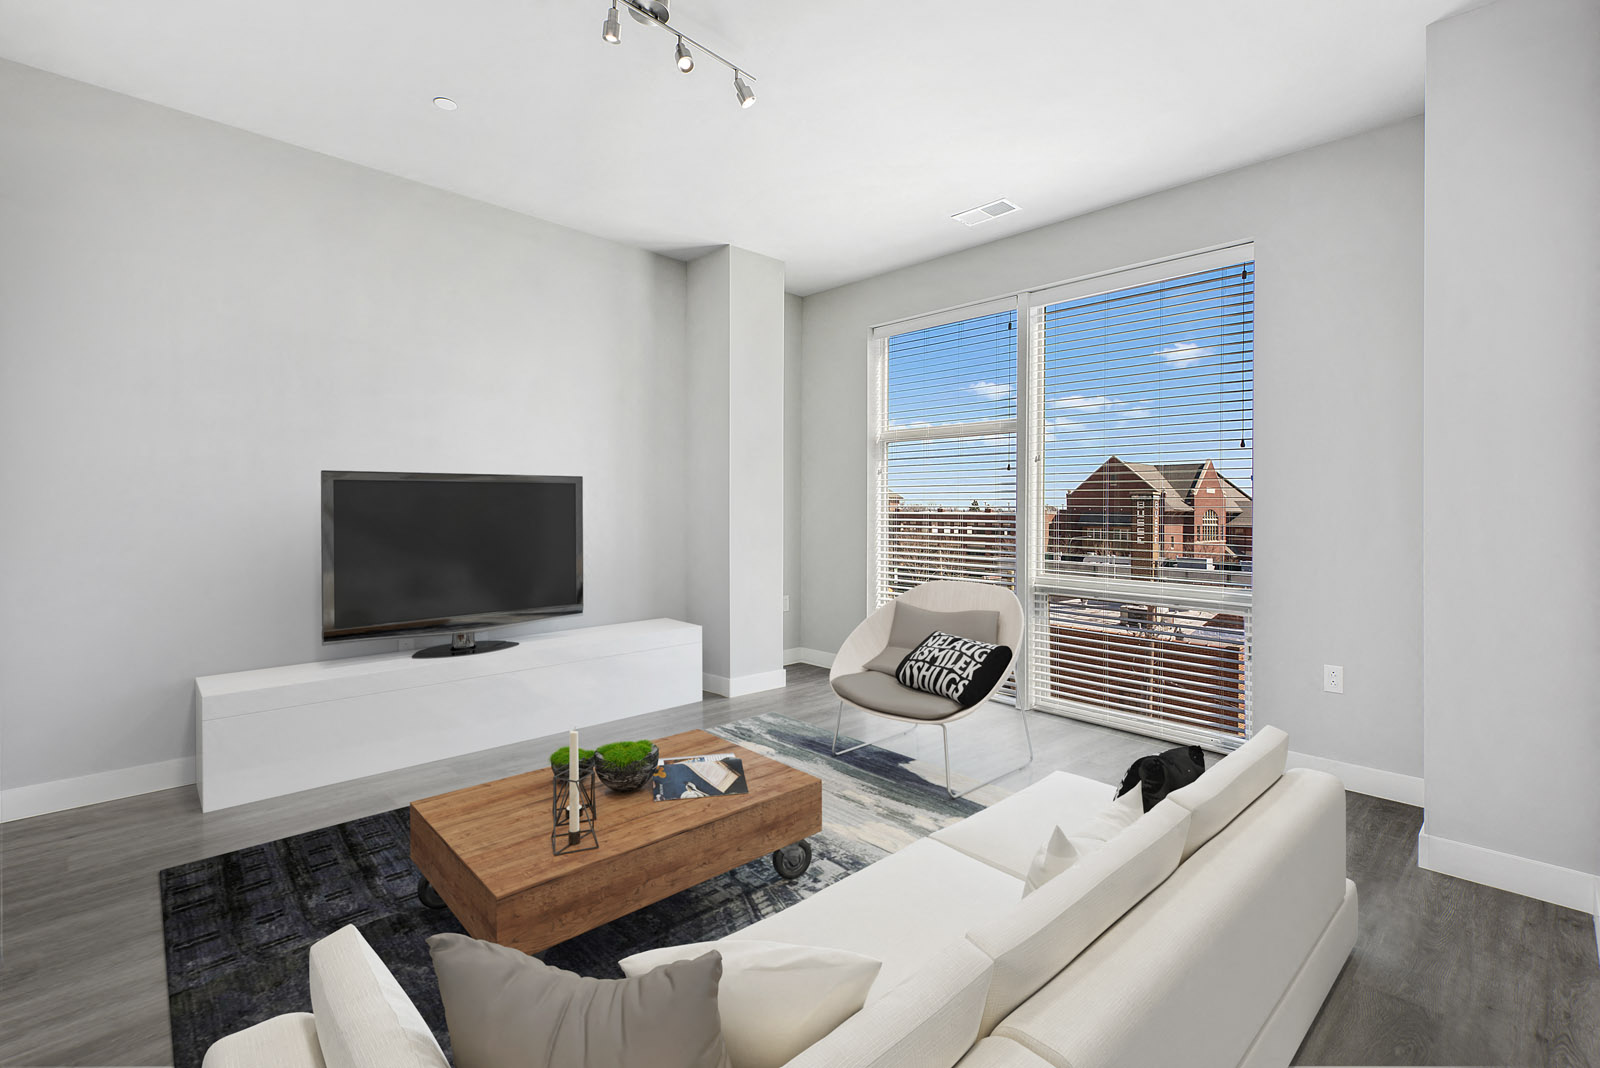 1 bedroom living room with counch and TV stand, floor to ceiling windows to the right of the TV